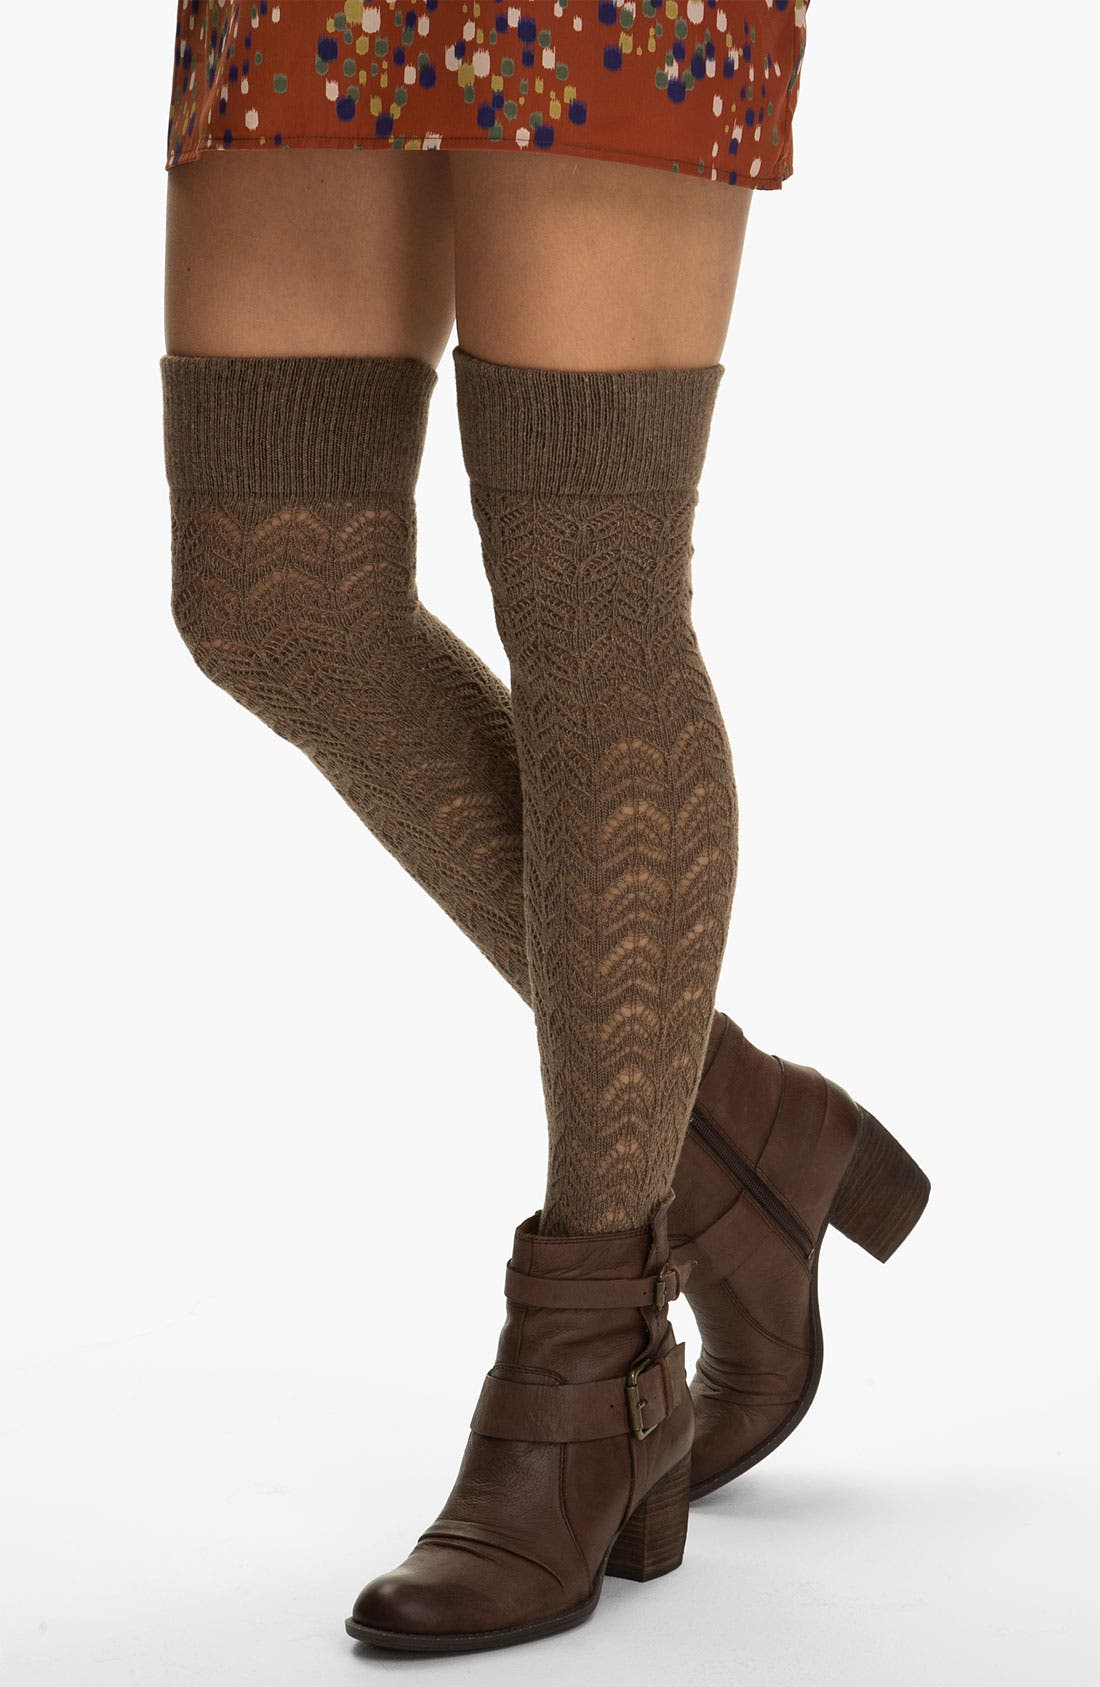 Main Image - Oroblu 'Calzerotto Fanette' Over the Knee Socks